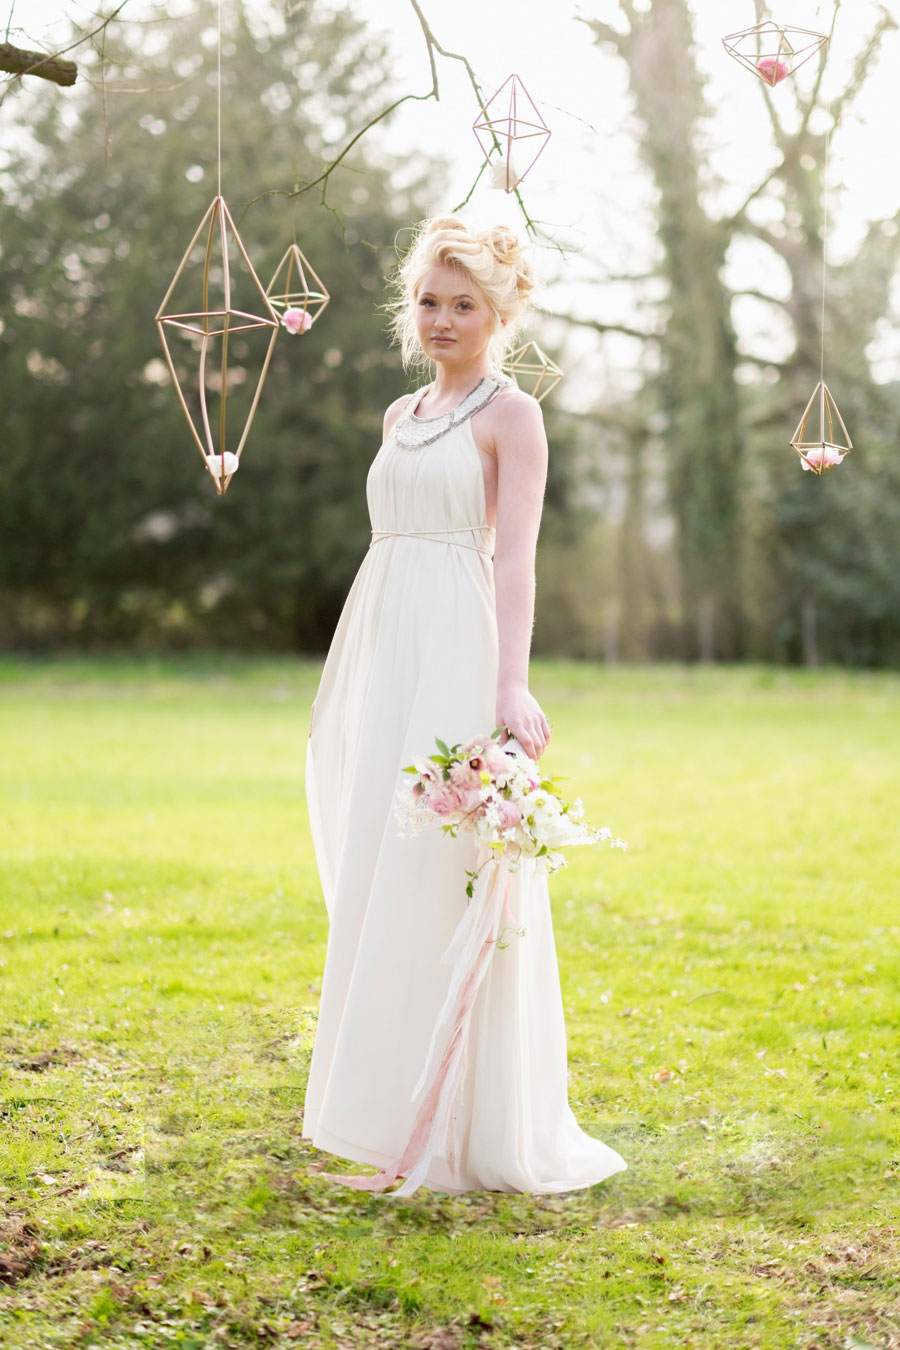 A Modern, Luxe, Woodland Shoot Featuring Geometric Elements, Metallic Touches And Lush Florals0045